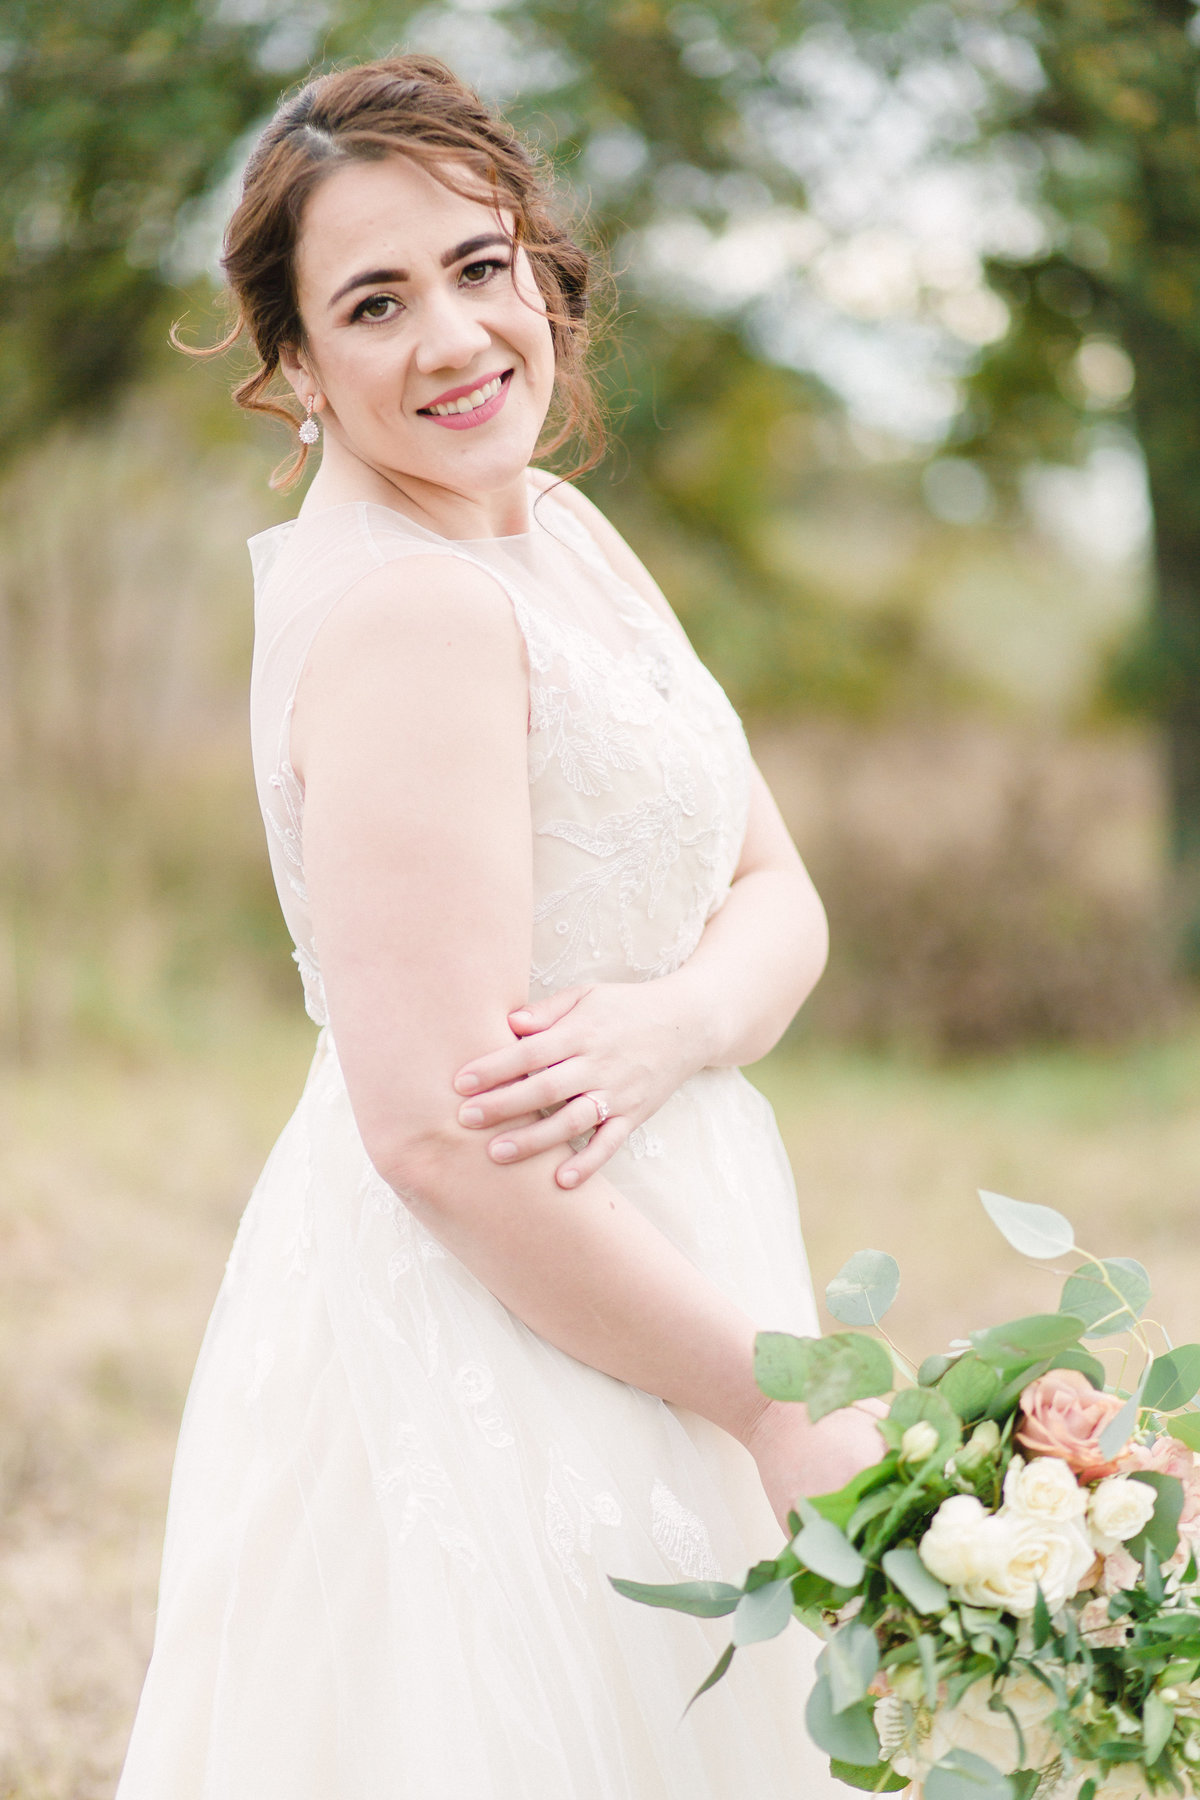 The-woodlands-bridal-session-alicia-yarrish-photography-39